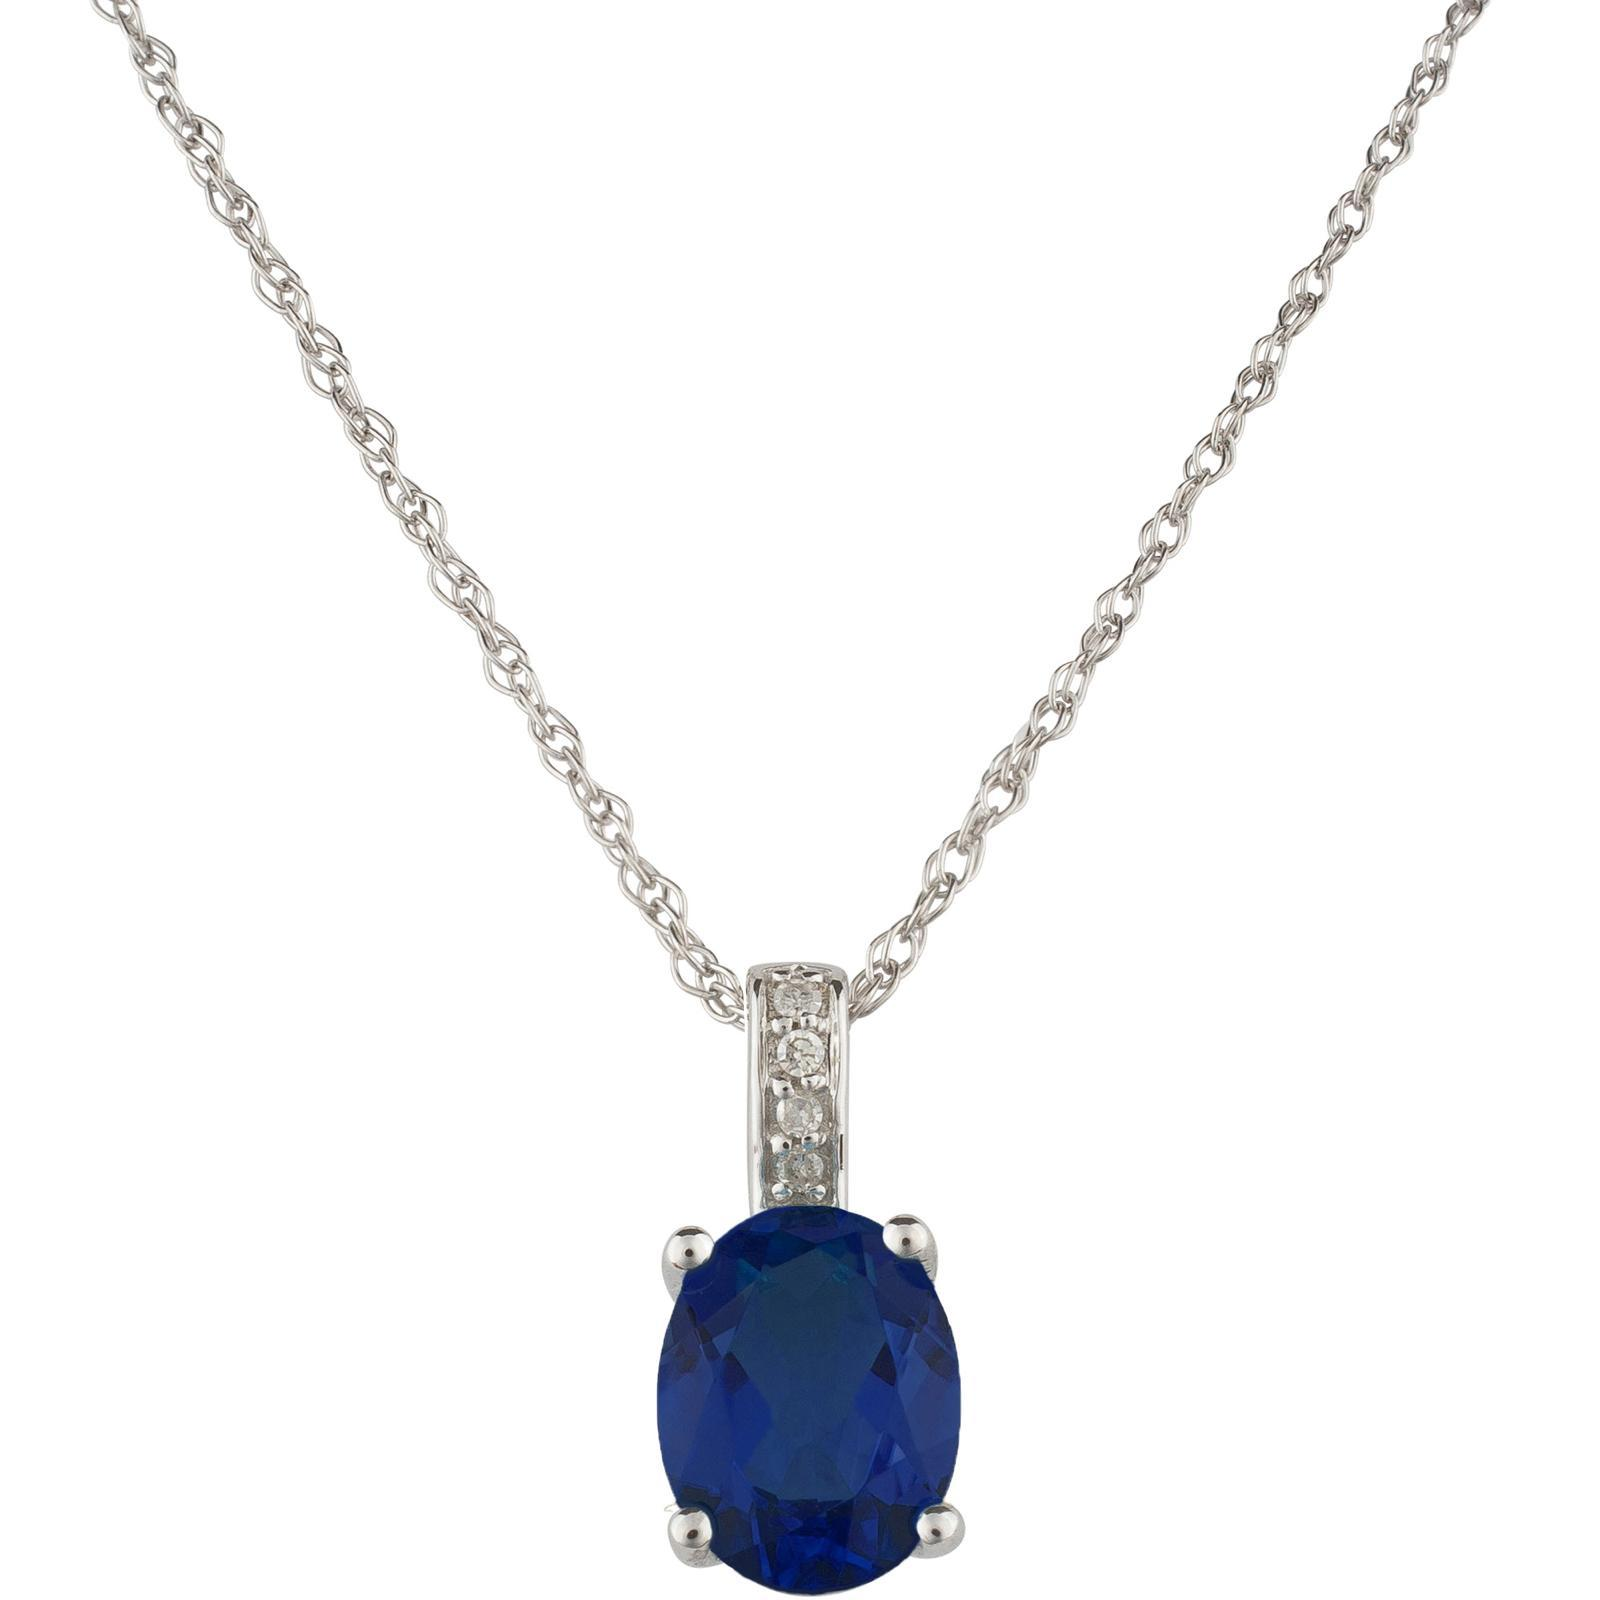 14k White Gold Diamond and Sapphire Pendant With Chain